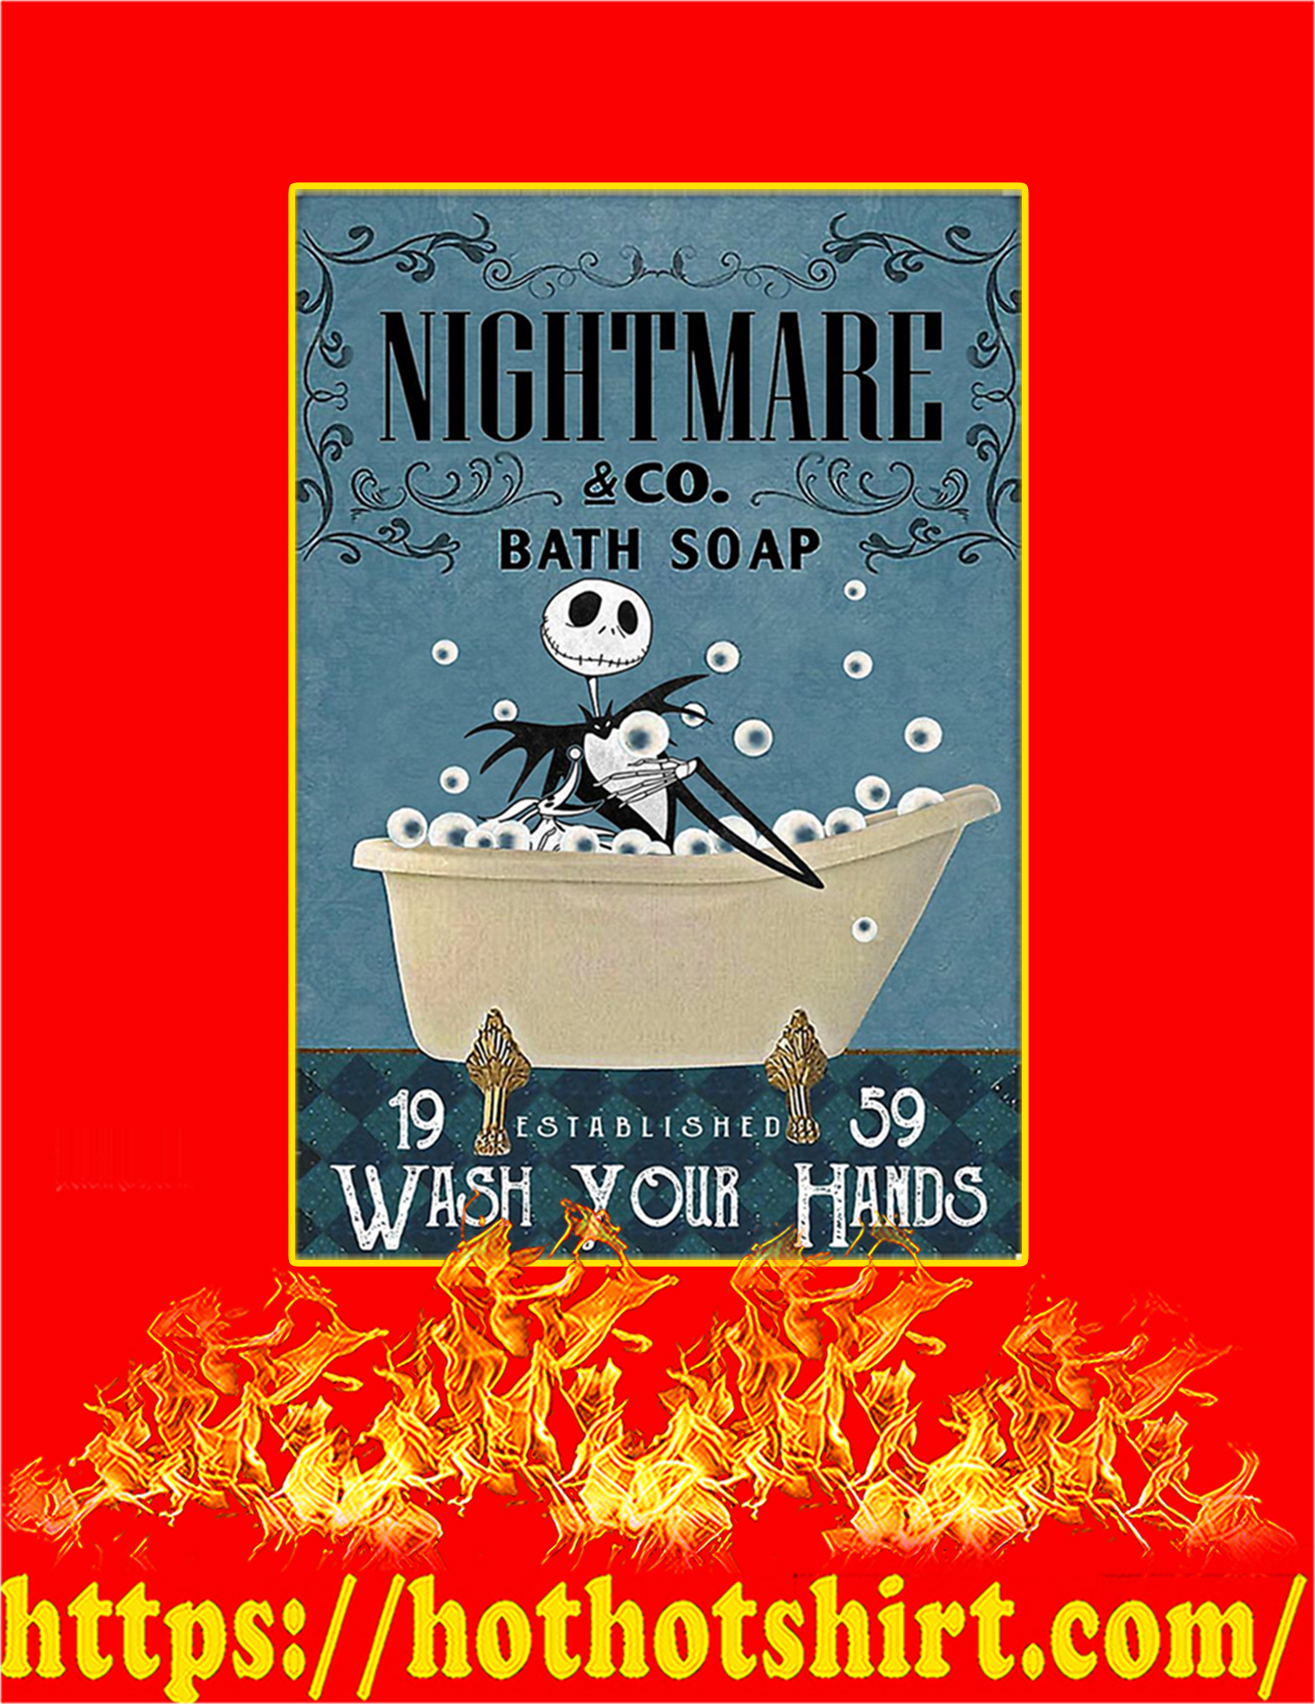 Bath soap company nightmare wash your hands poster - A2